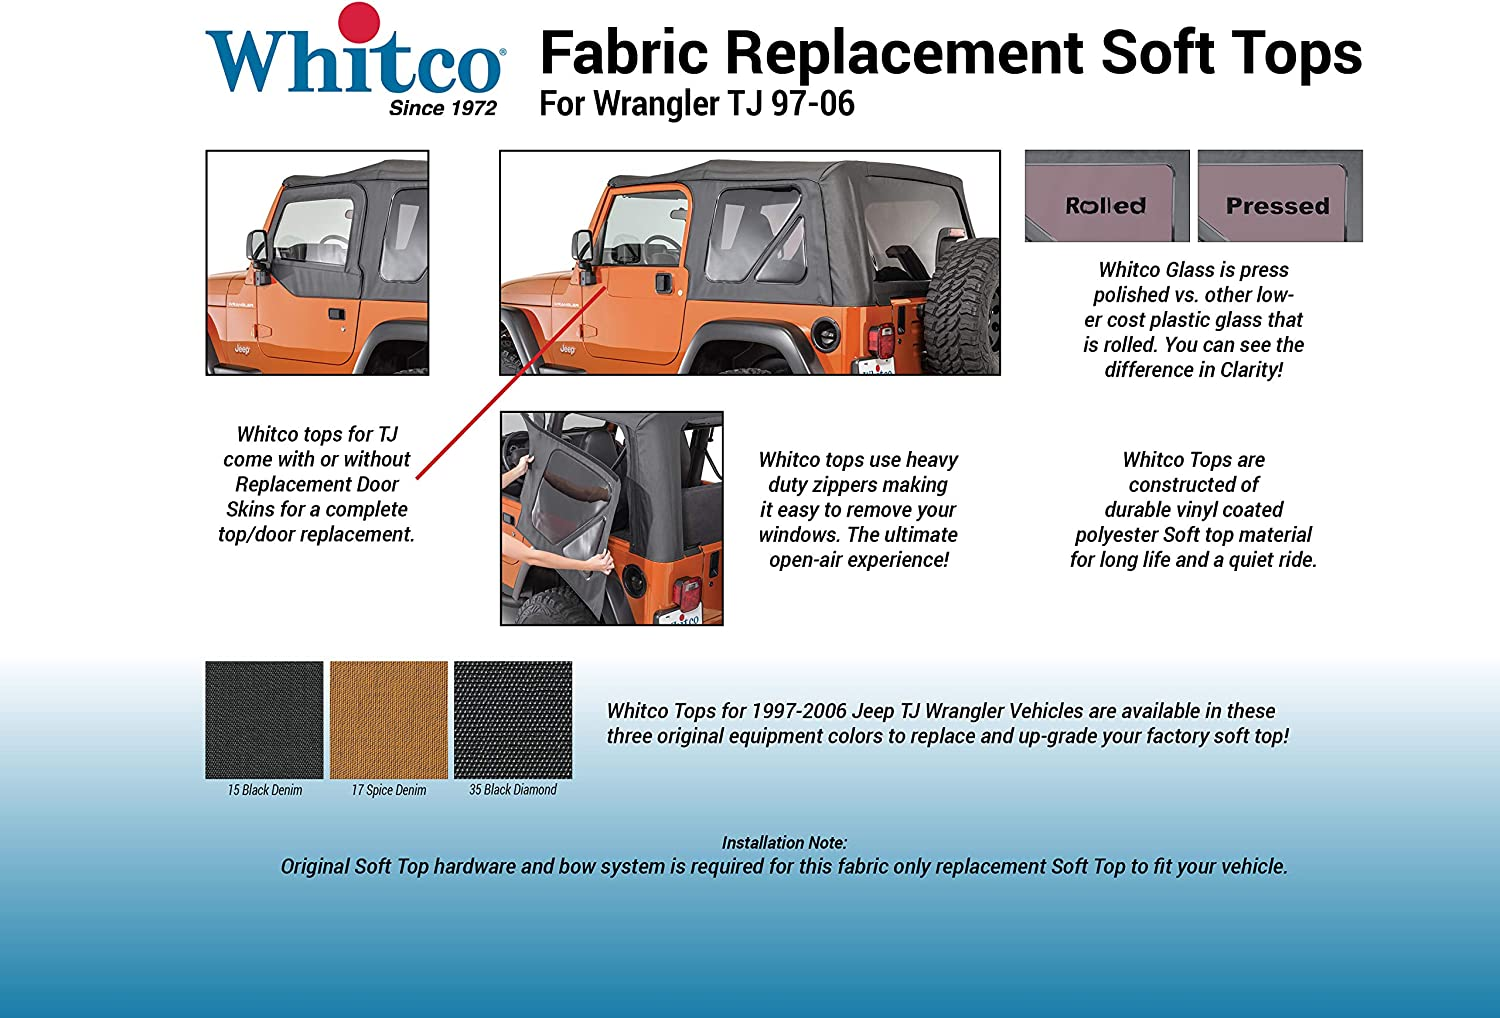 Whitco 35101237 Spice Diamond no Door Skins Jeep 97-06 TJ Wrangler Soft Top